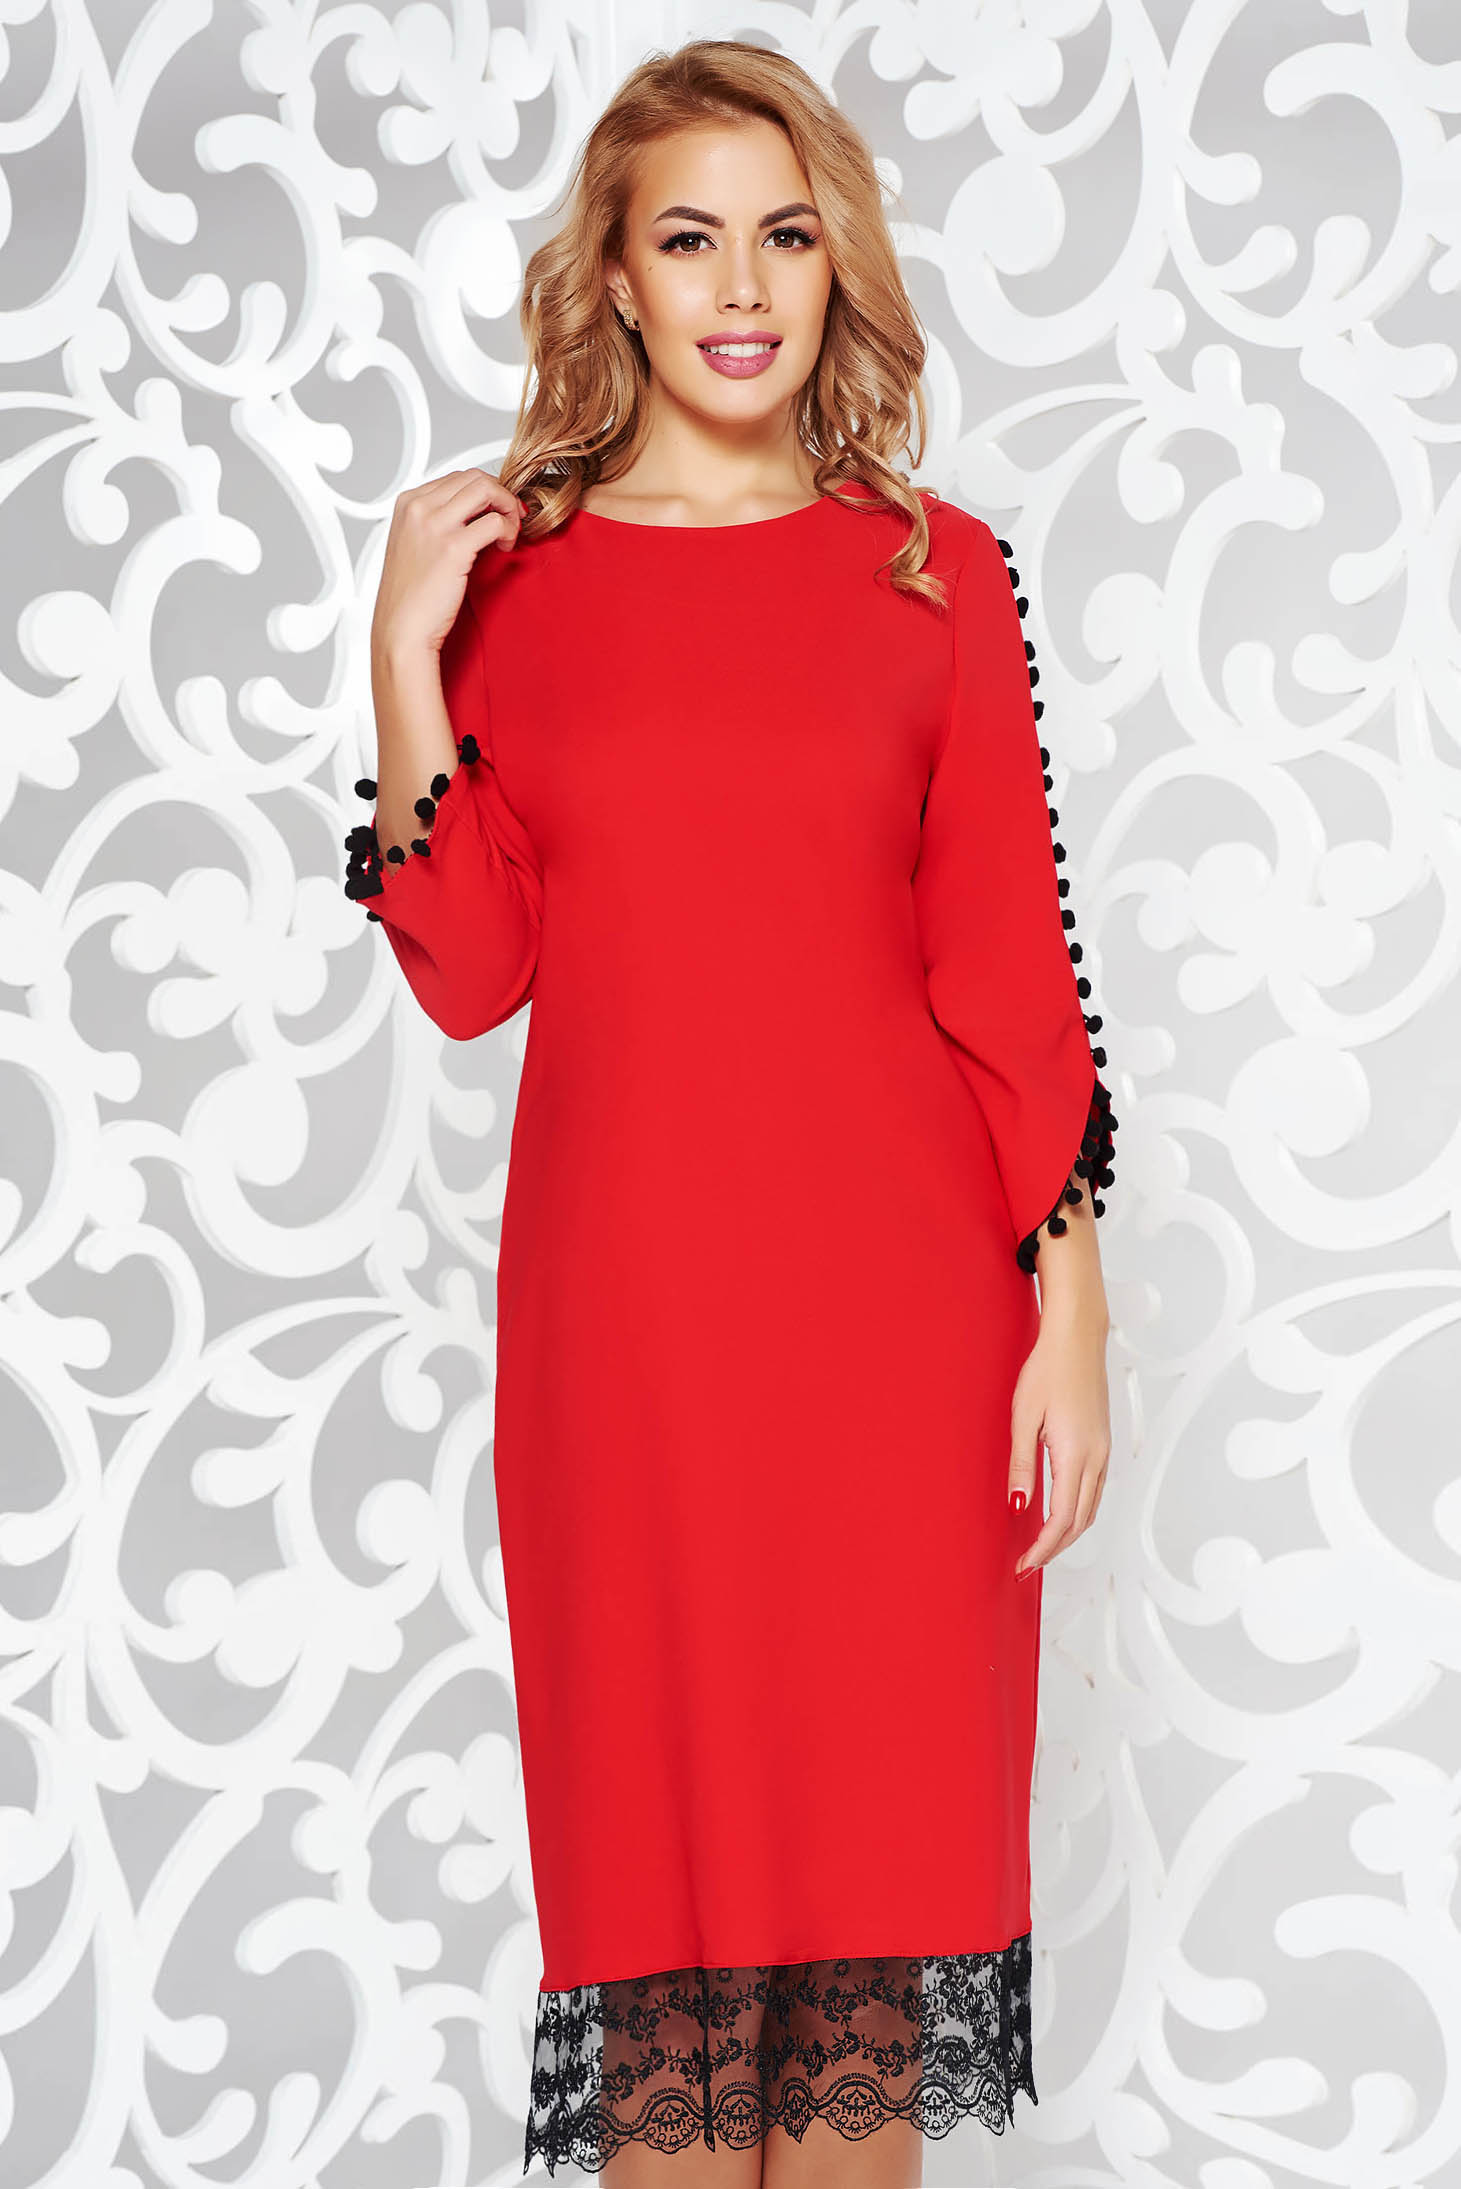 Red dress elegant flared slightly elastic fabric with lace details with tassels